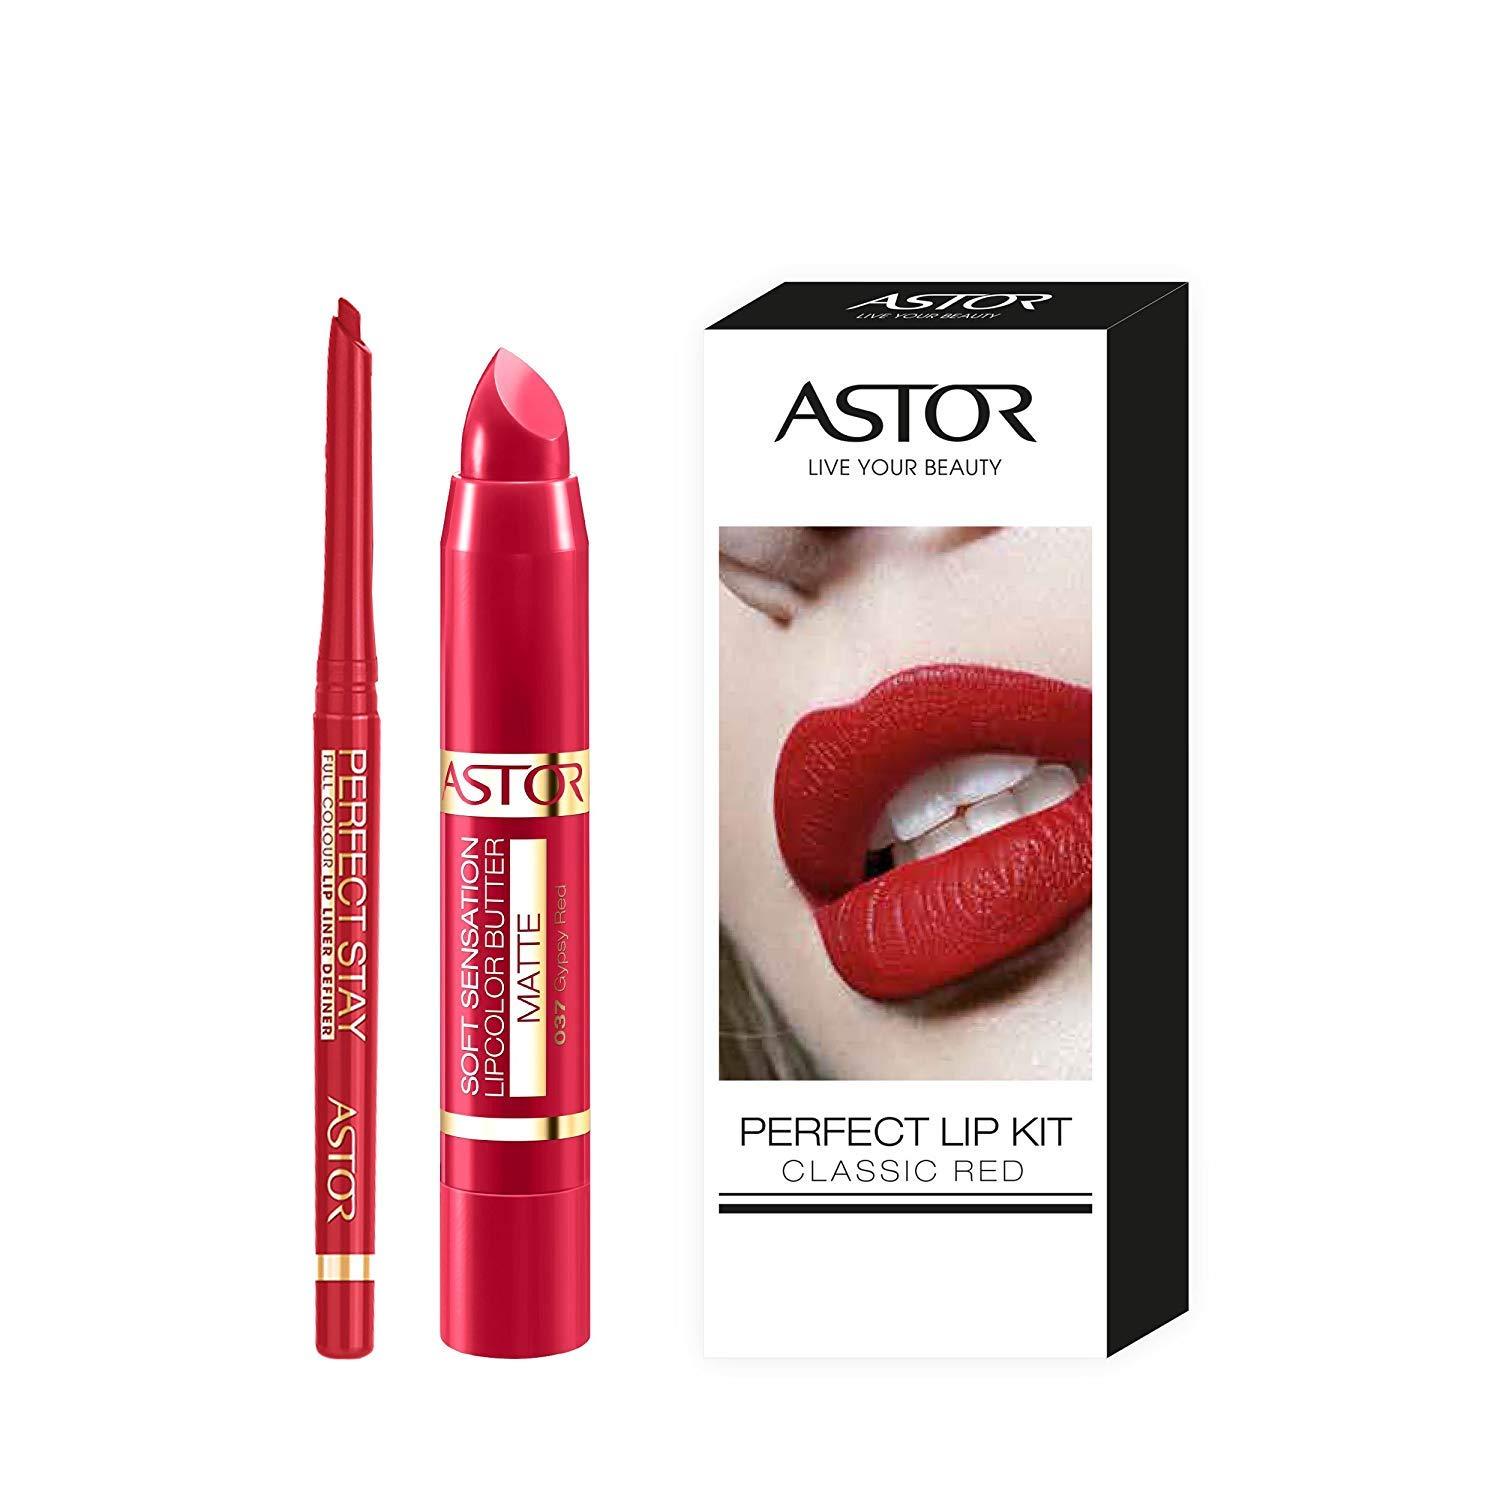 Astor Lip Kit Nude mit Soft Sensation Lip Color Butter Matte und Perfect Stay Automatic Lip Liner, 1er Pack (1 x 5 g) 26150058000